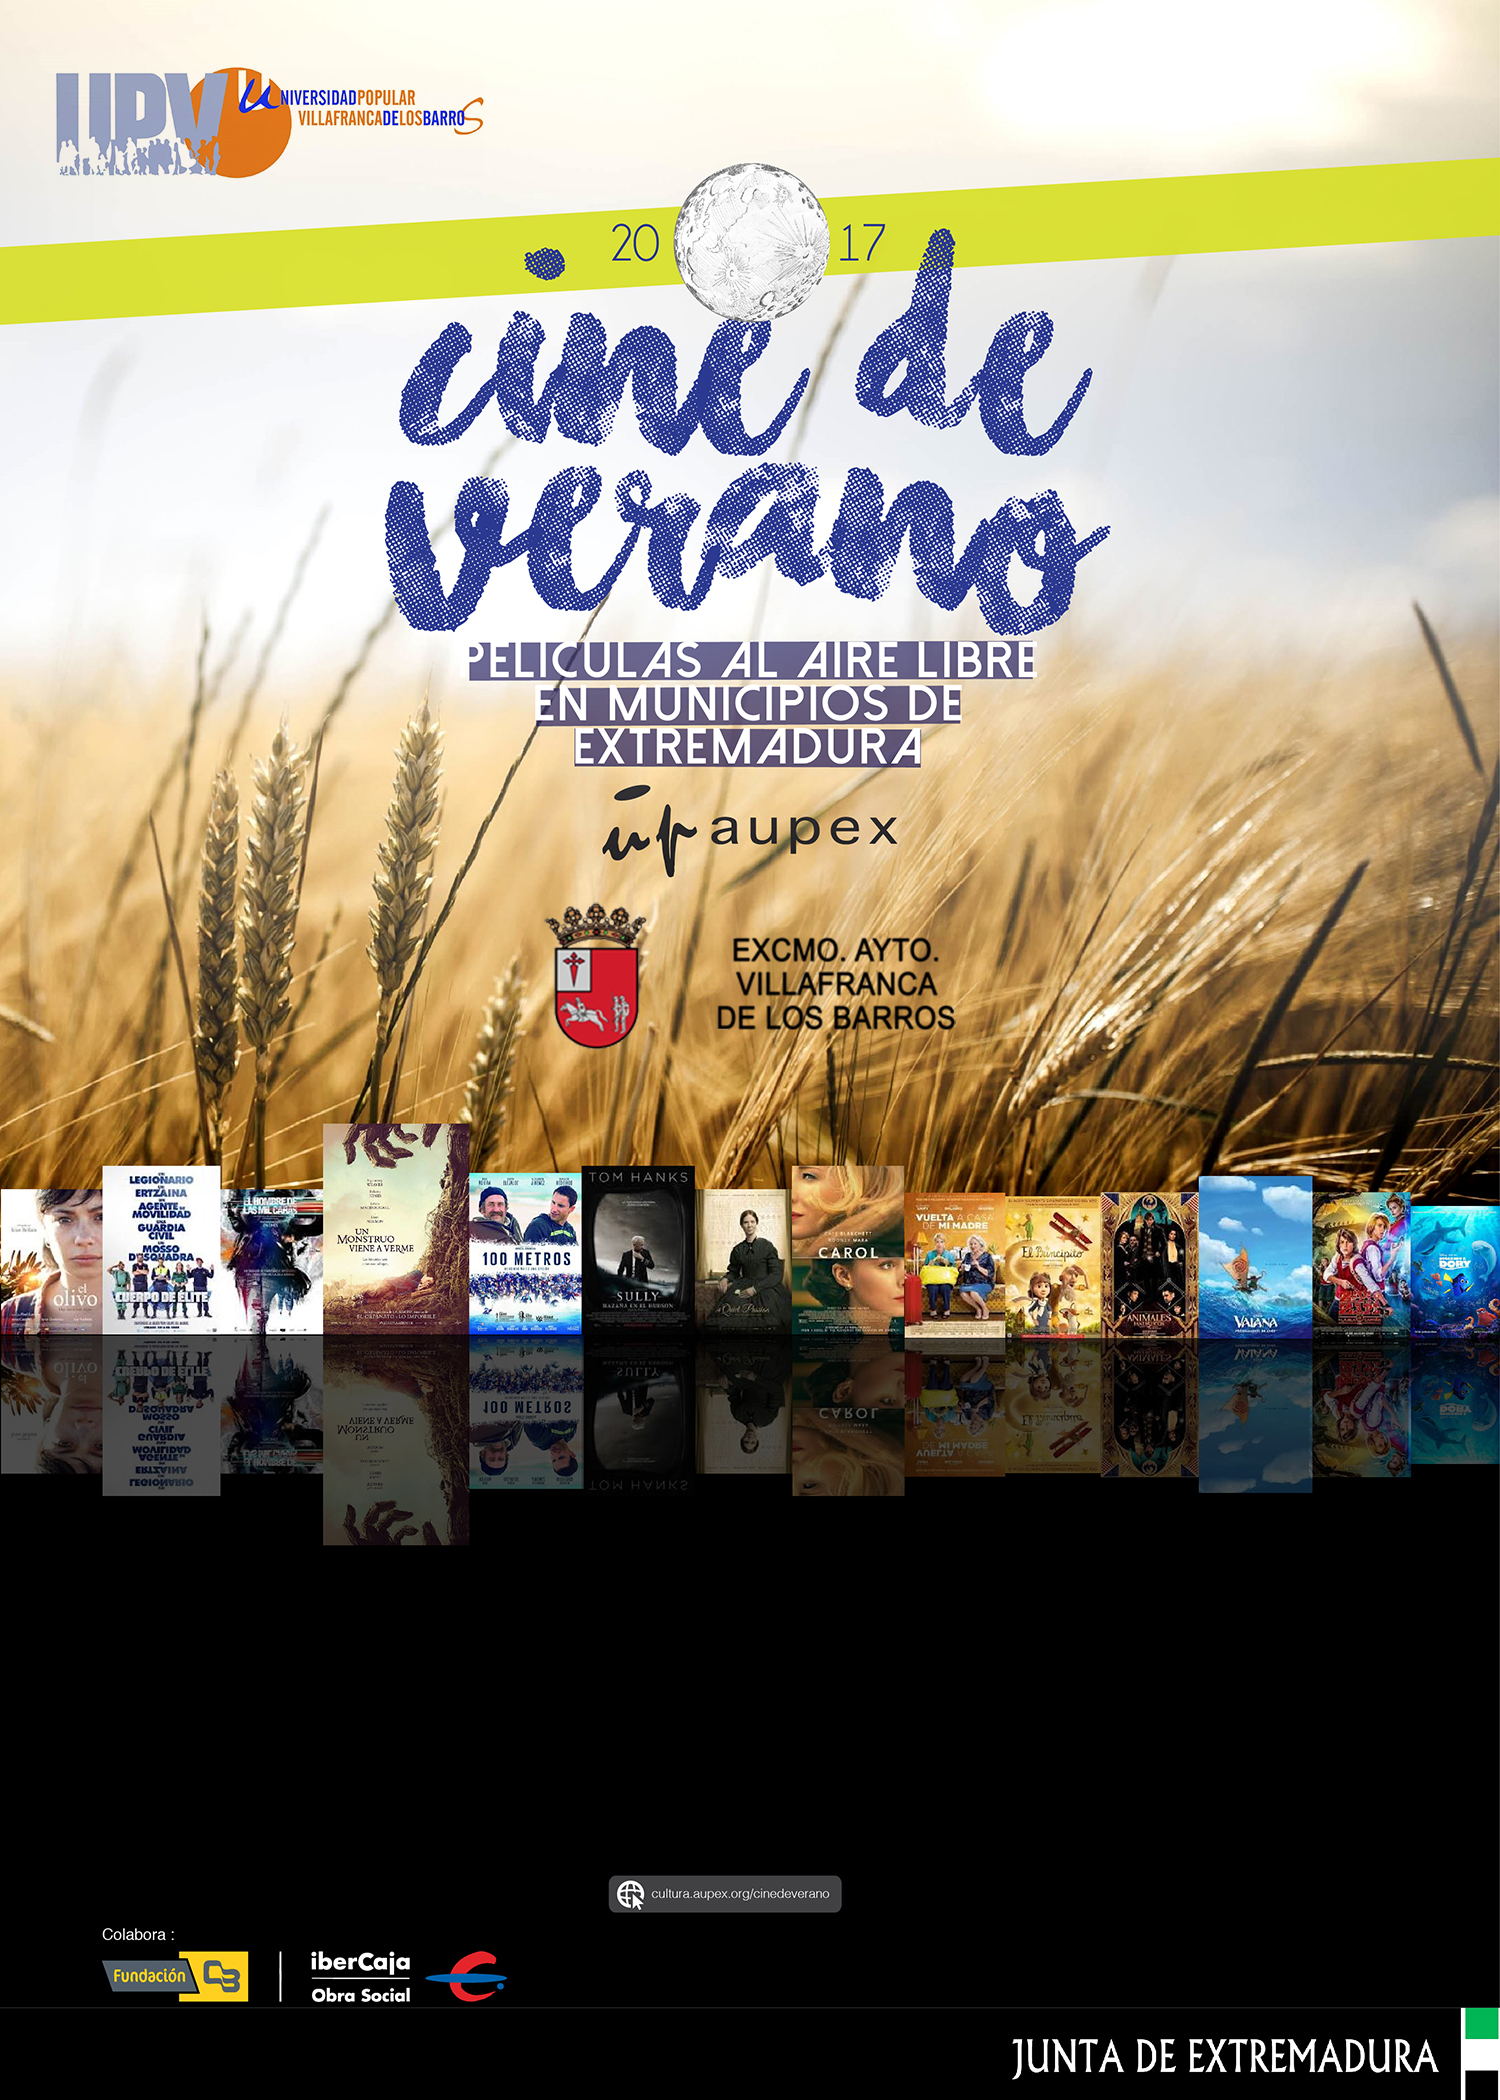 cineverano17 vacio cartel50x70